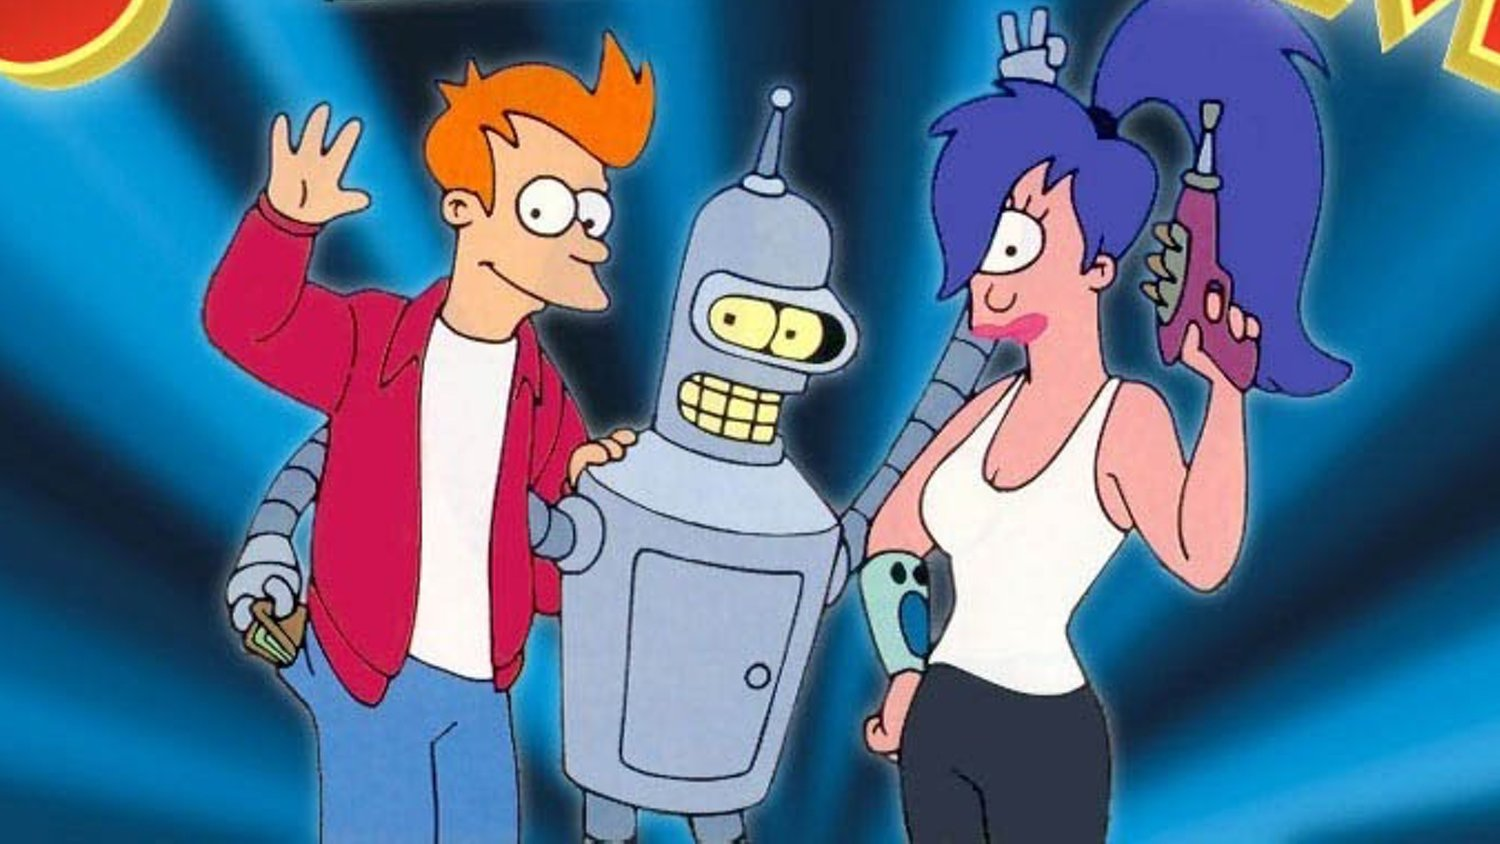 FUTURAMA Is Making a Comeback With a Mobile Game Created by the Original Cast and Crew